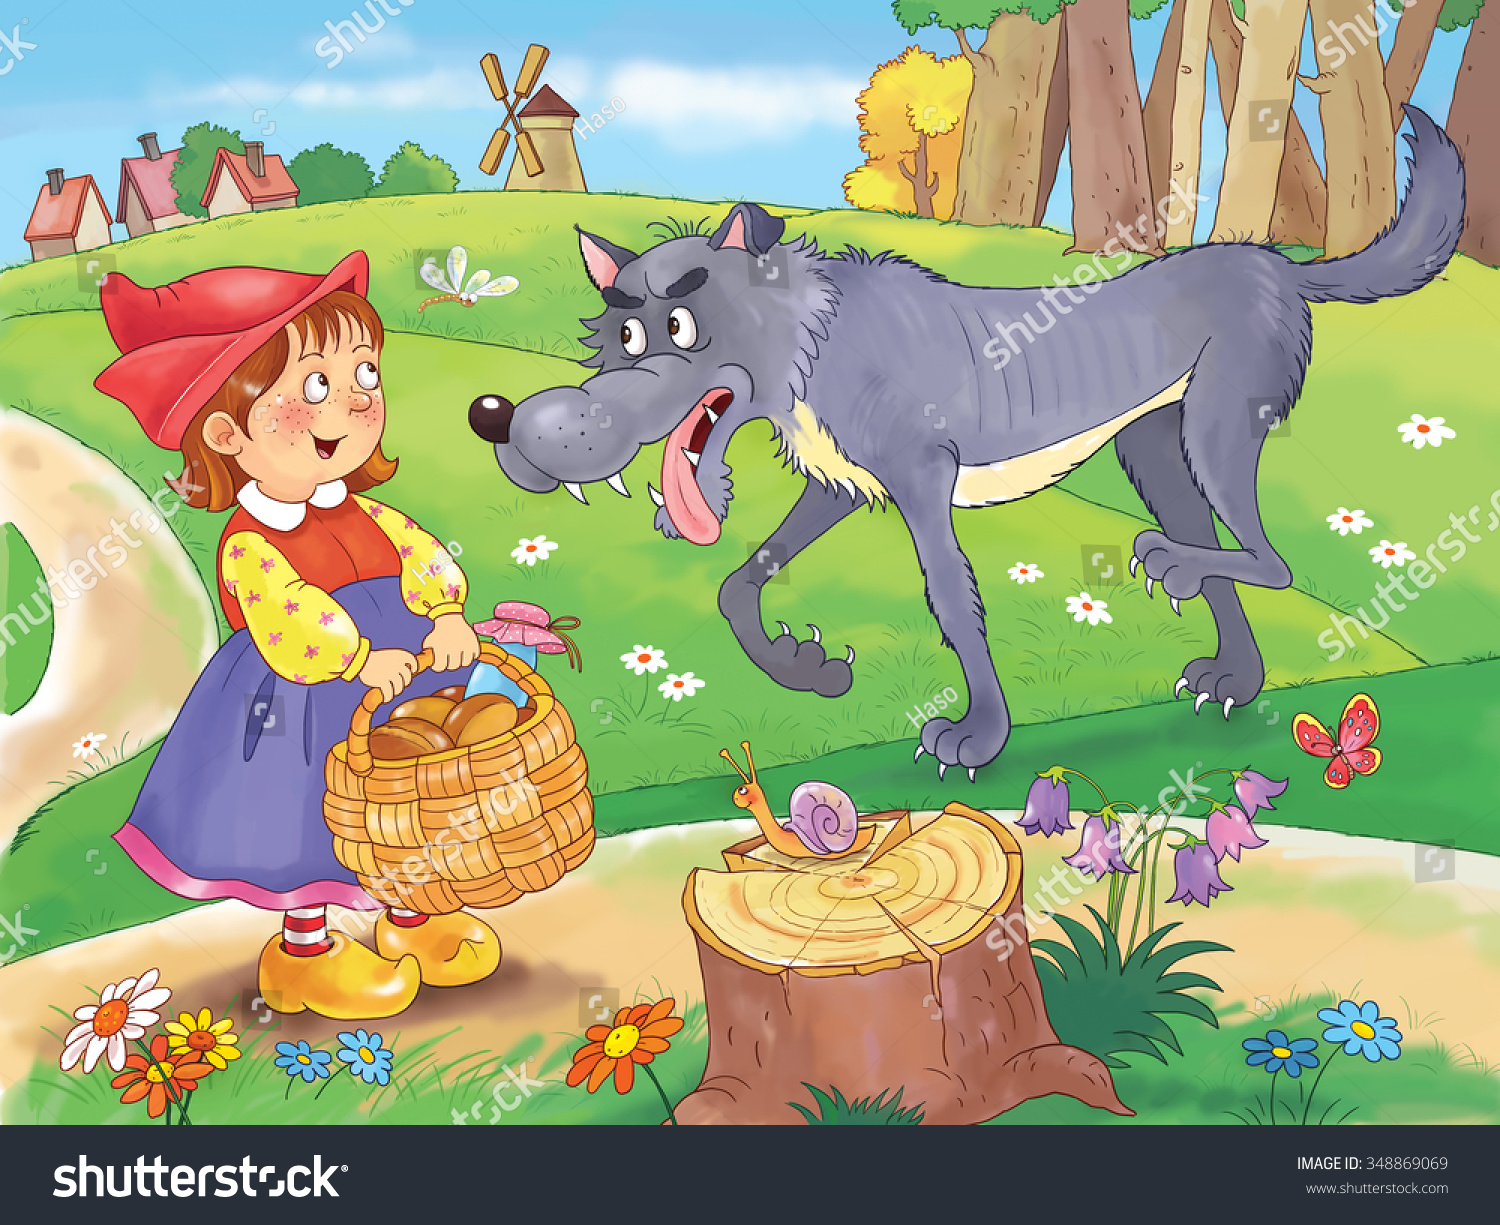 Little red riding hood fairy tale stock illustration 348869069 little red riding hood fairy tale a cute girl with a basket full of buycottarizona